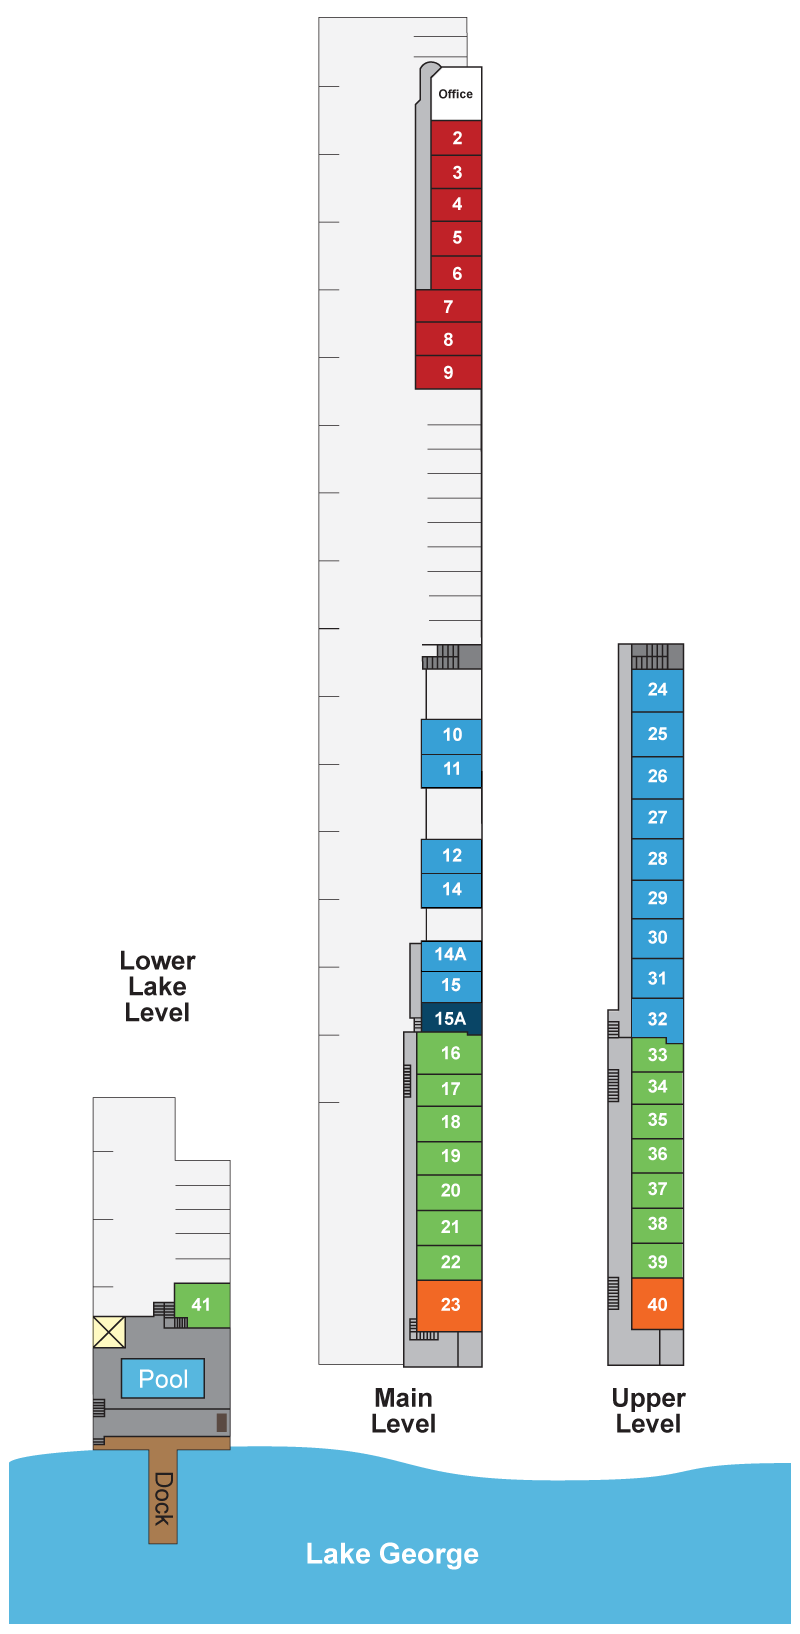 Propert layout illustration showing lower lake level with room 41 and pool; main level with the office and rooms grouped 2-9, 10-11, 12 and 14, 14a and 15, 15a, 16-22 and 23; and upper level with grouped rooms 24-32, 33-39 and room 40.